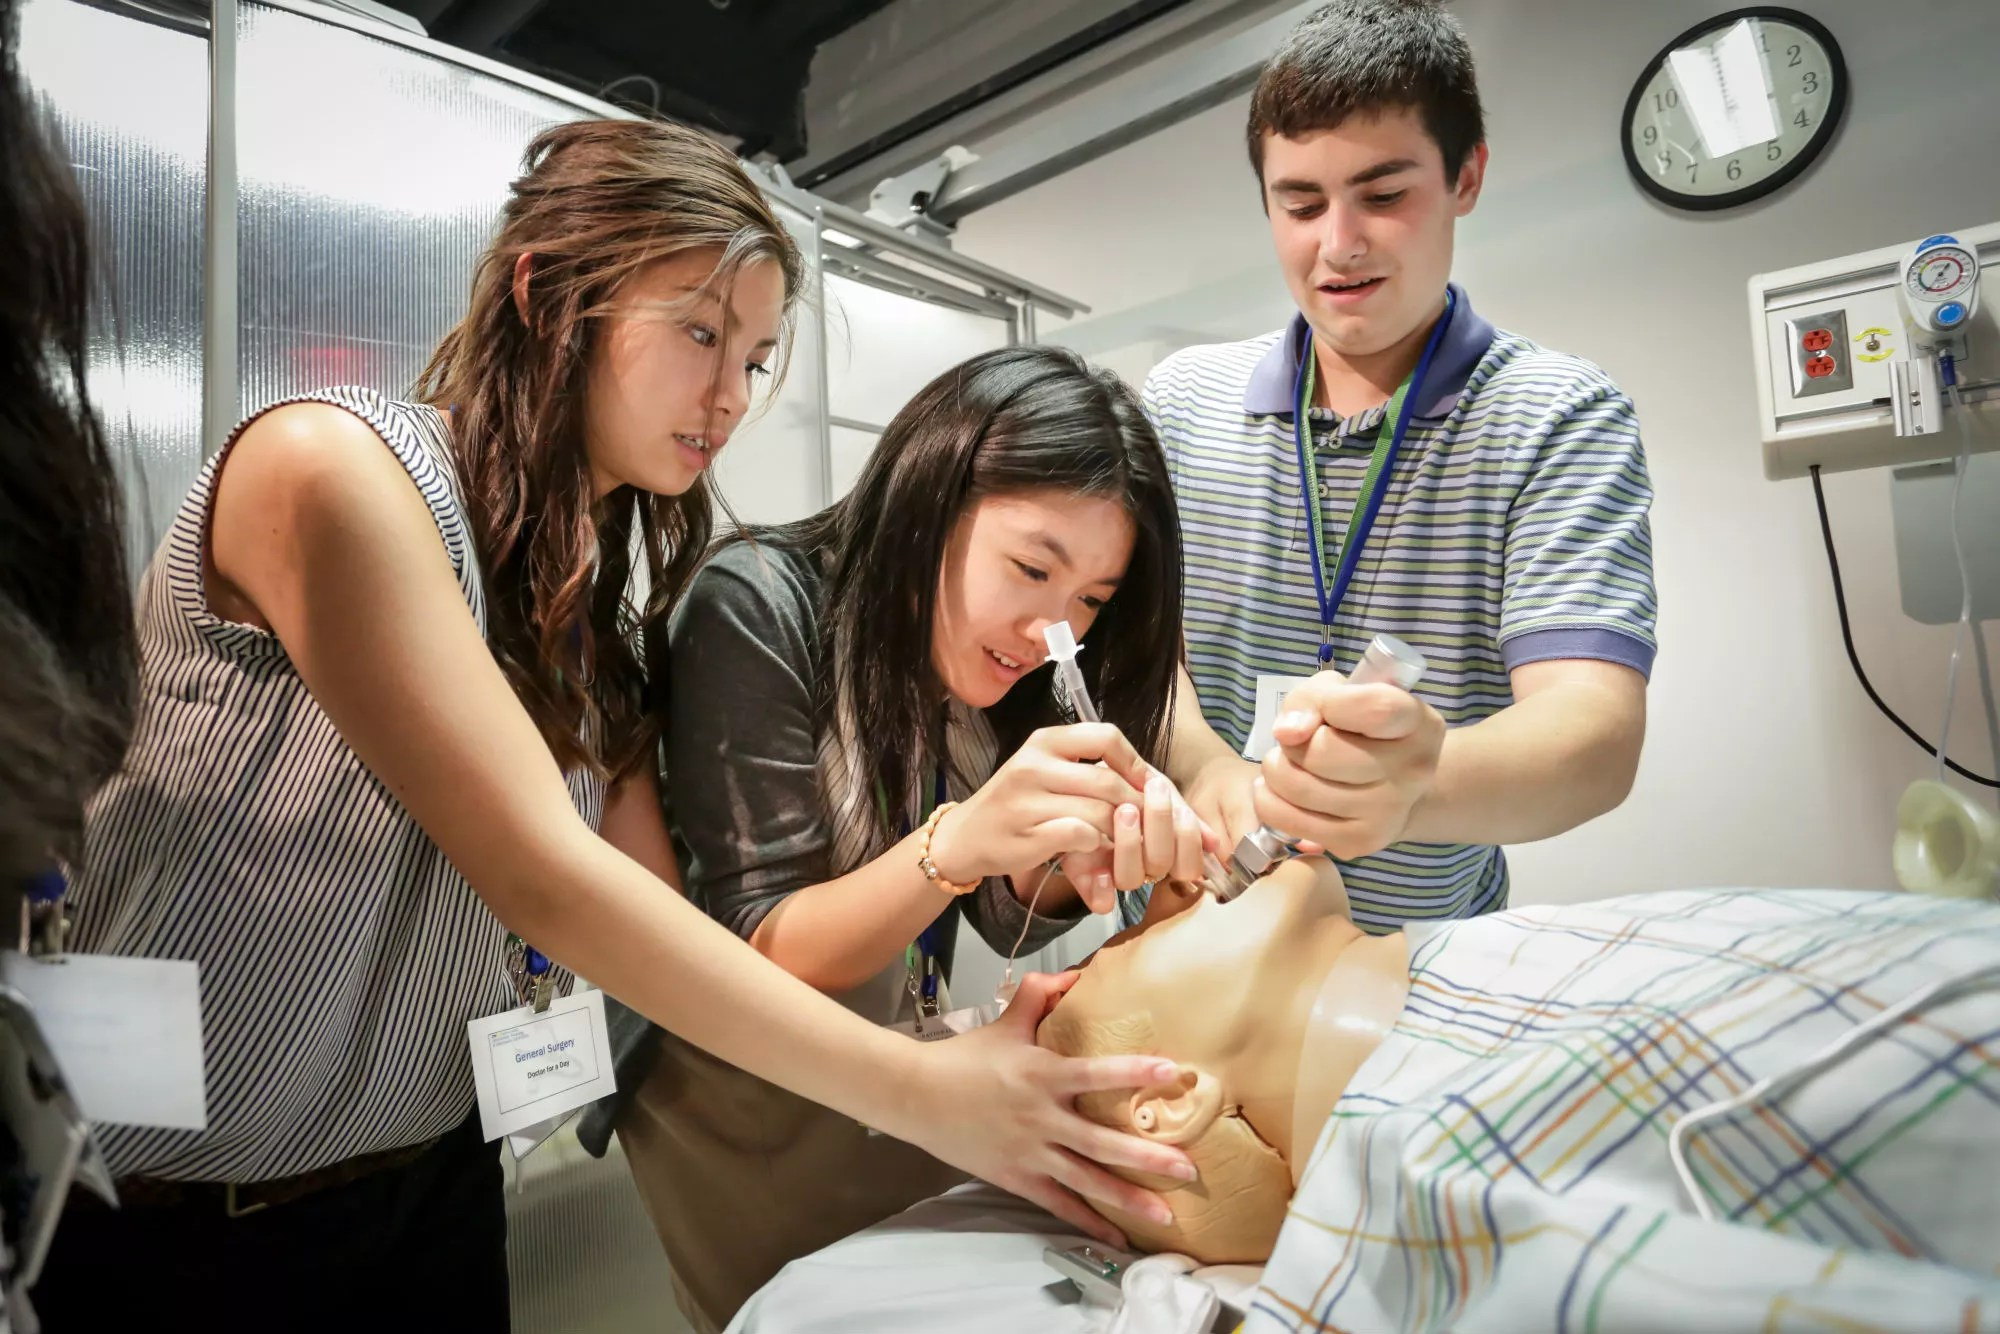 Explore Our Summer Medical Programs For High School